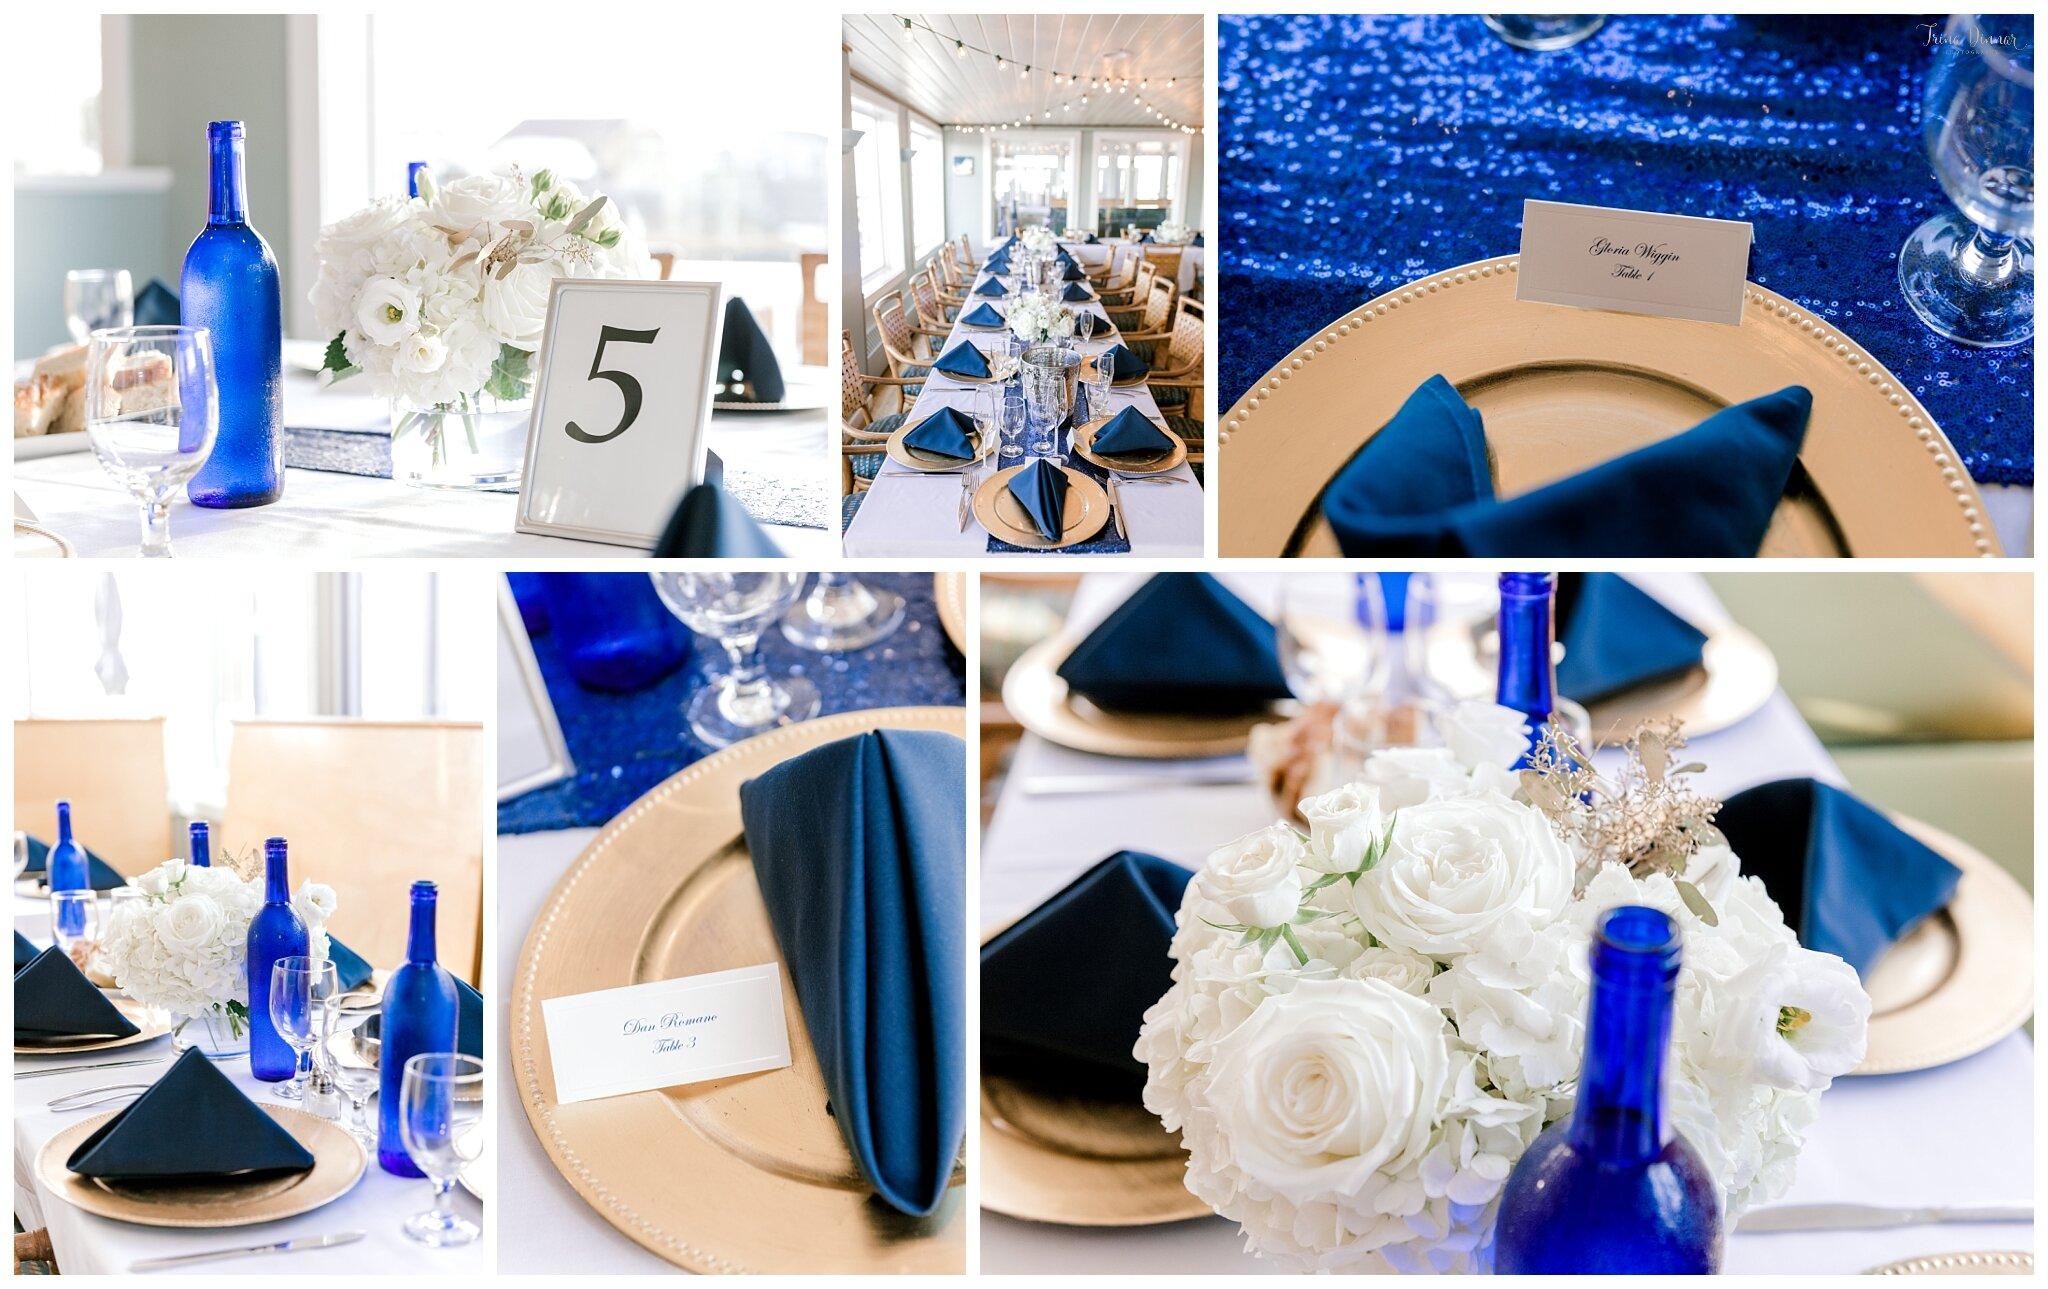 Maine Event Design and Decor at Saltwater Grille for a South Portland Wedding Reception